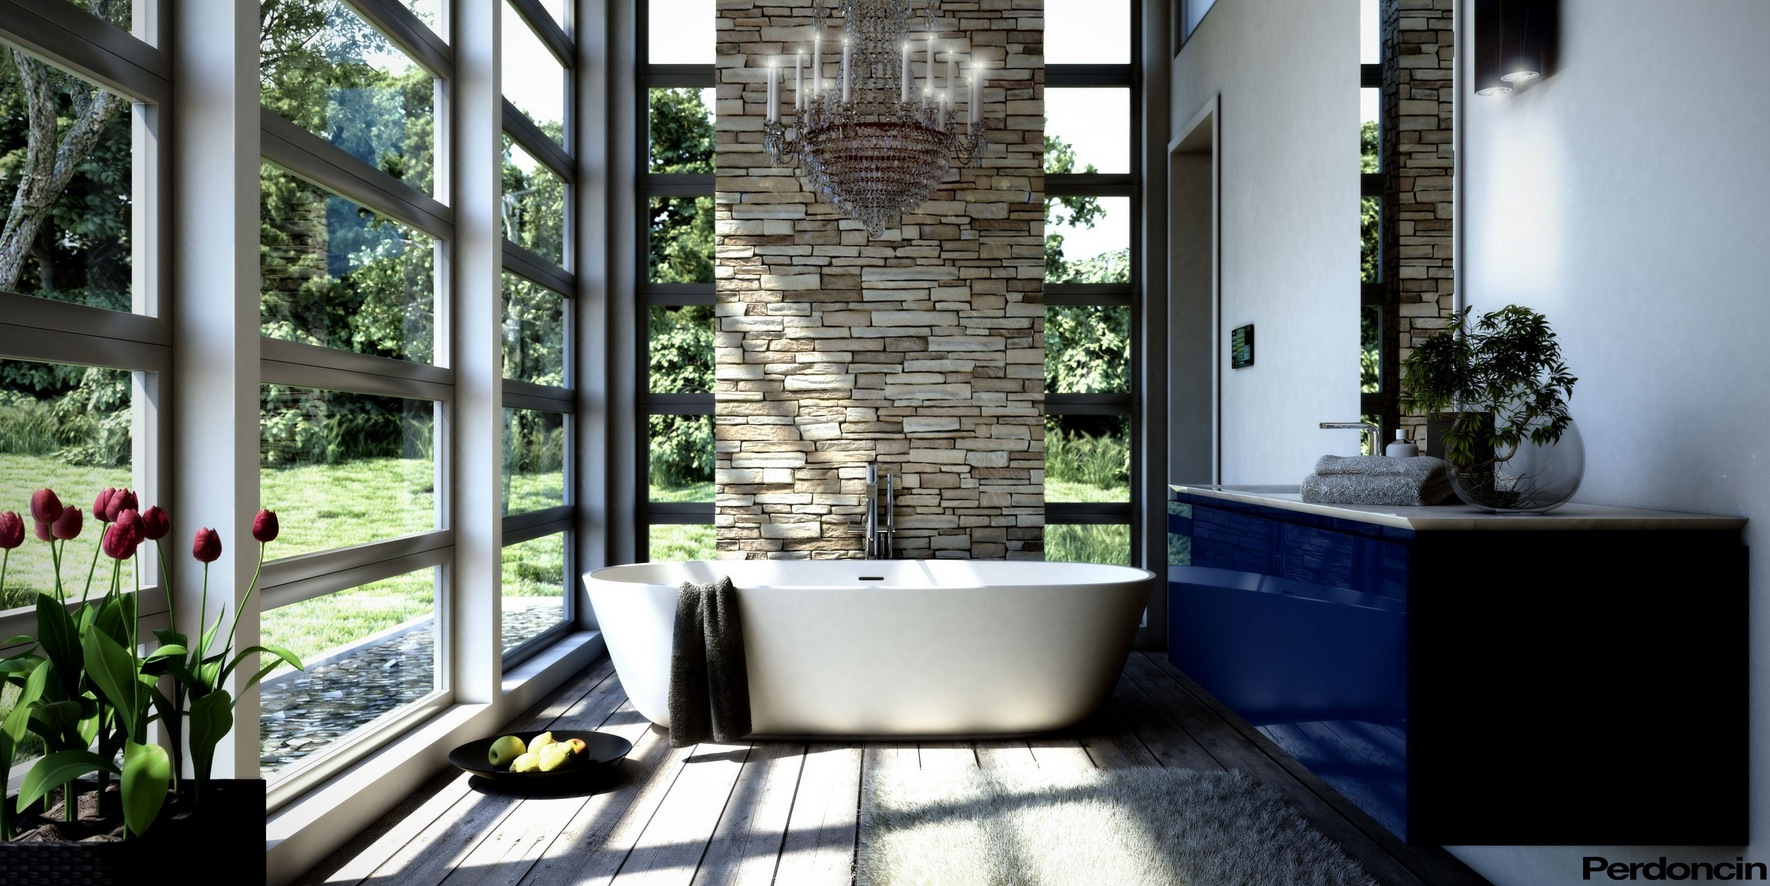 Bathtubs with a view of nature for Bathroom salle de bain